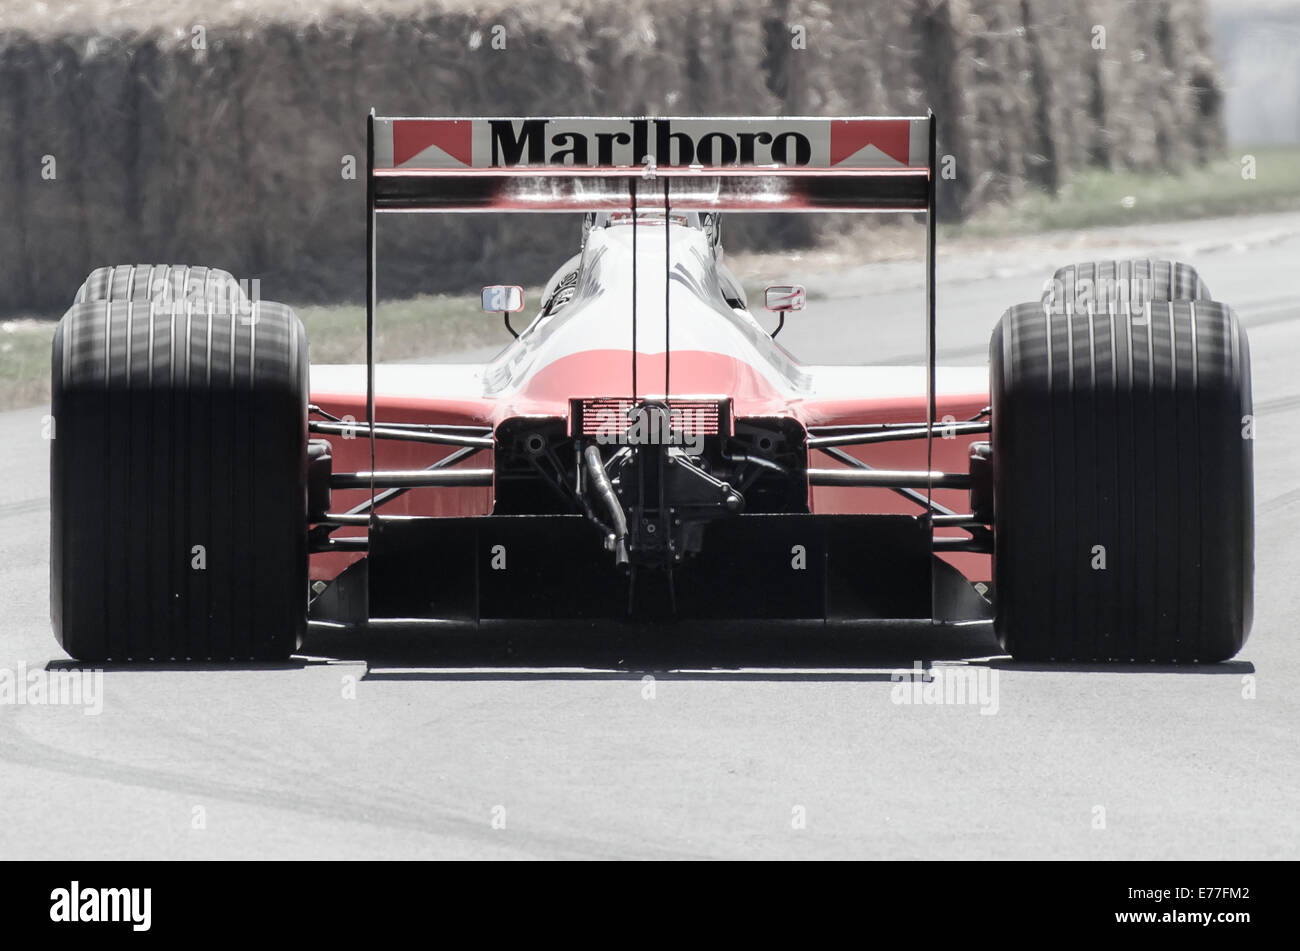 the-mclaren-mp44-was-a-successful-f1-car-that-competed-in-the-88-season-E77FM2.jpg